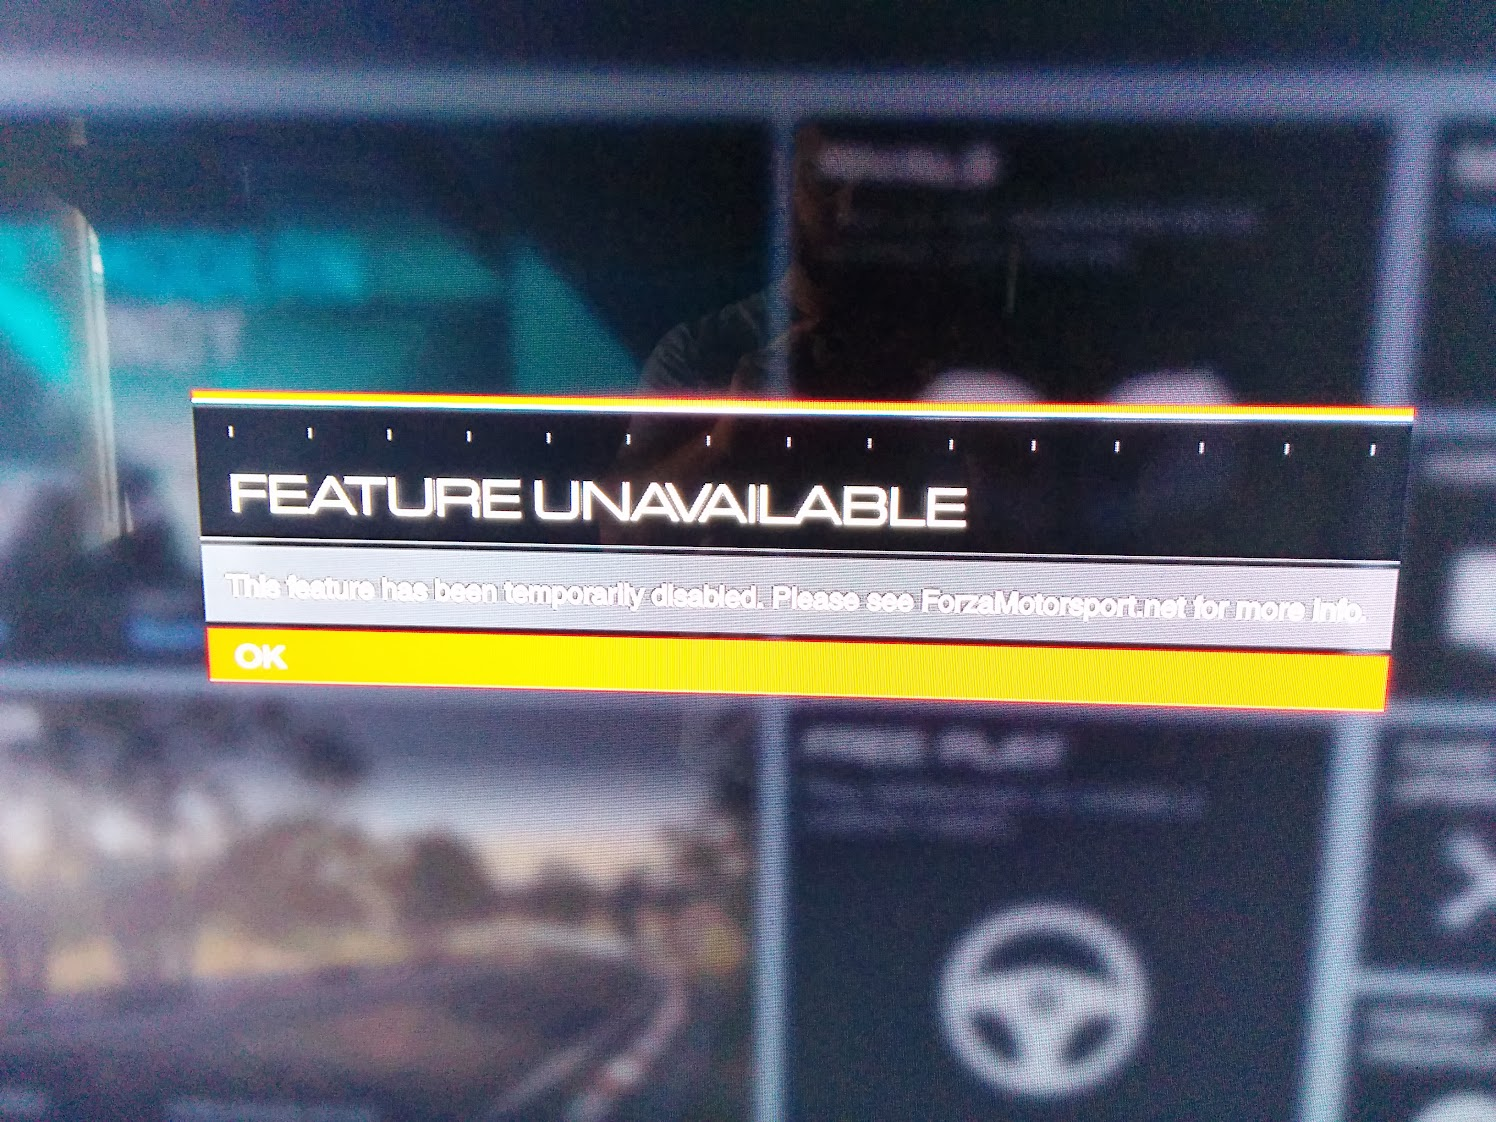 SO FRUSTRATED!! Cannot connect to multiplayer/servers for